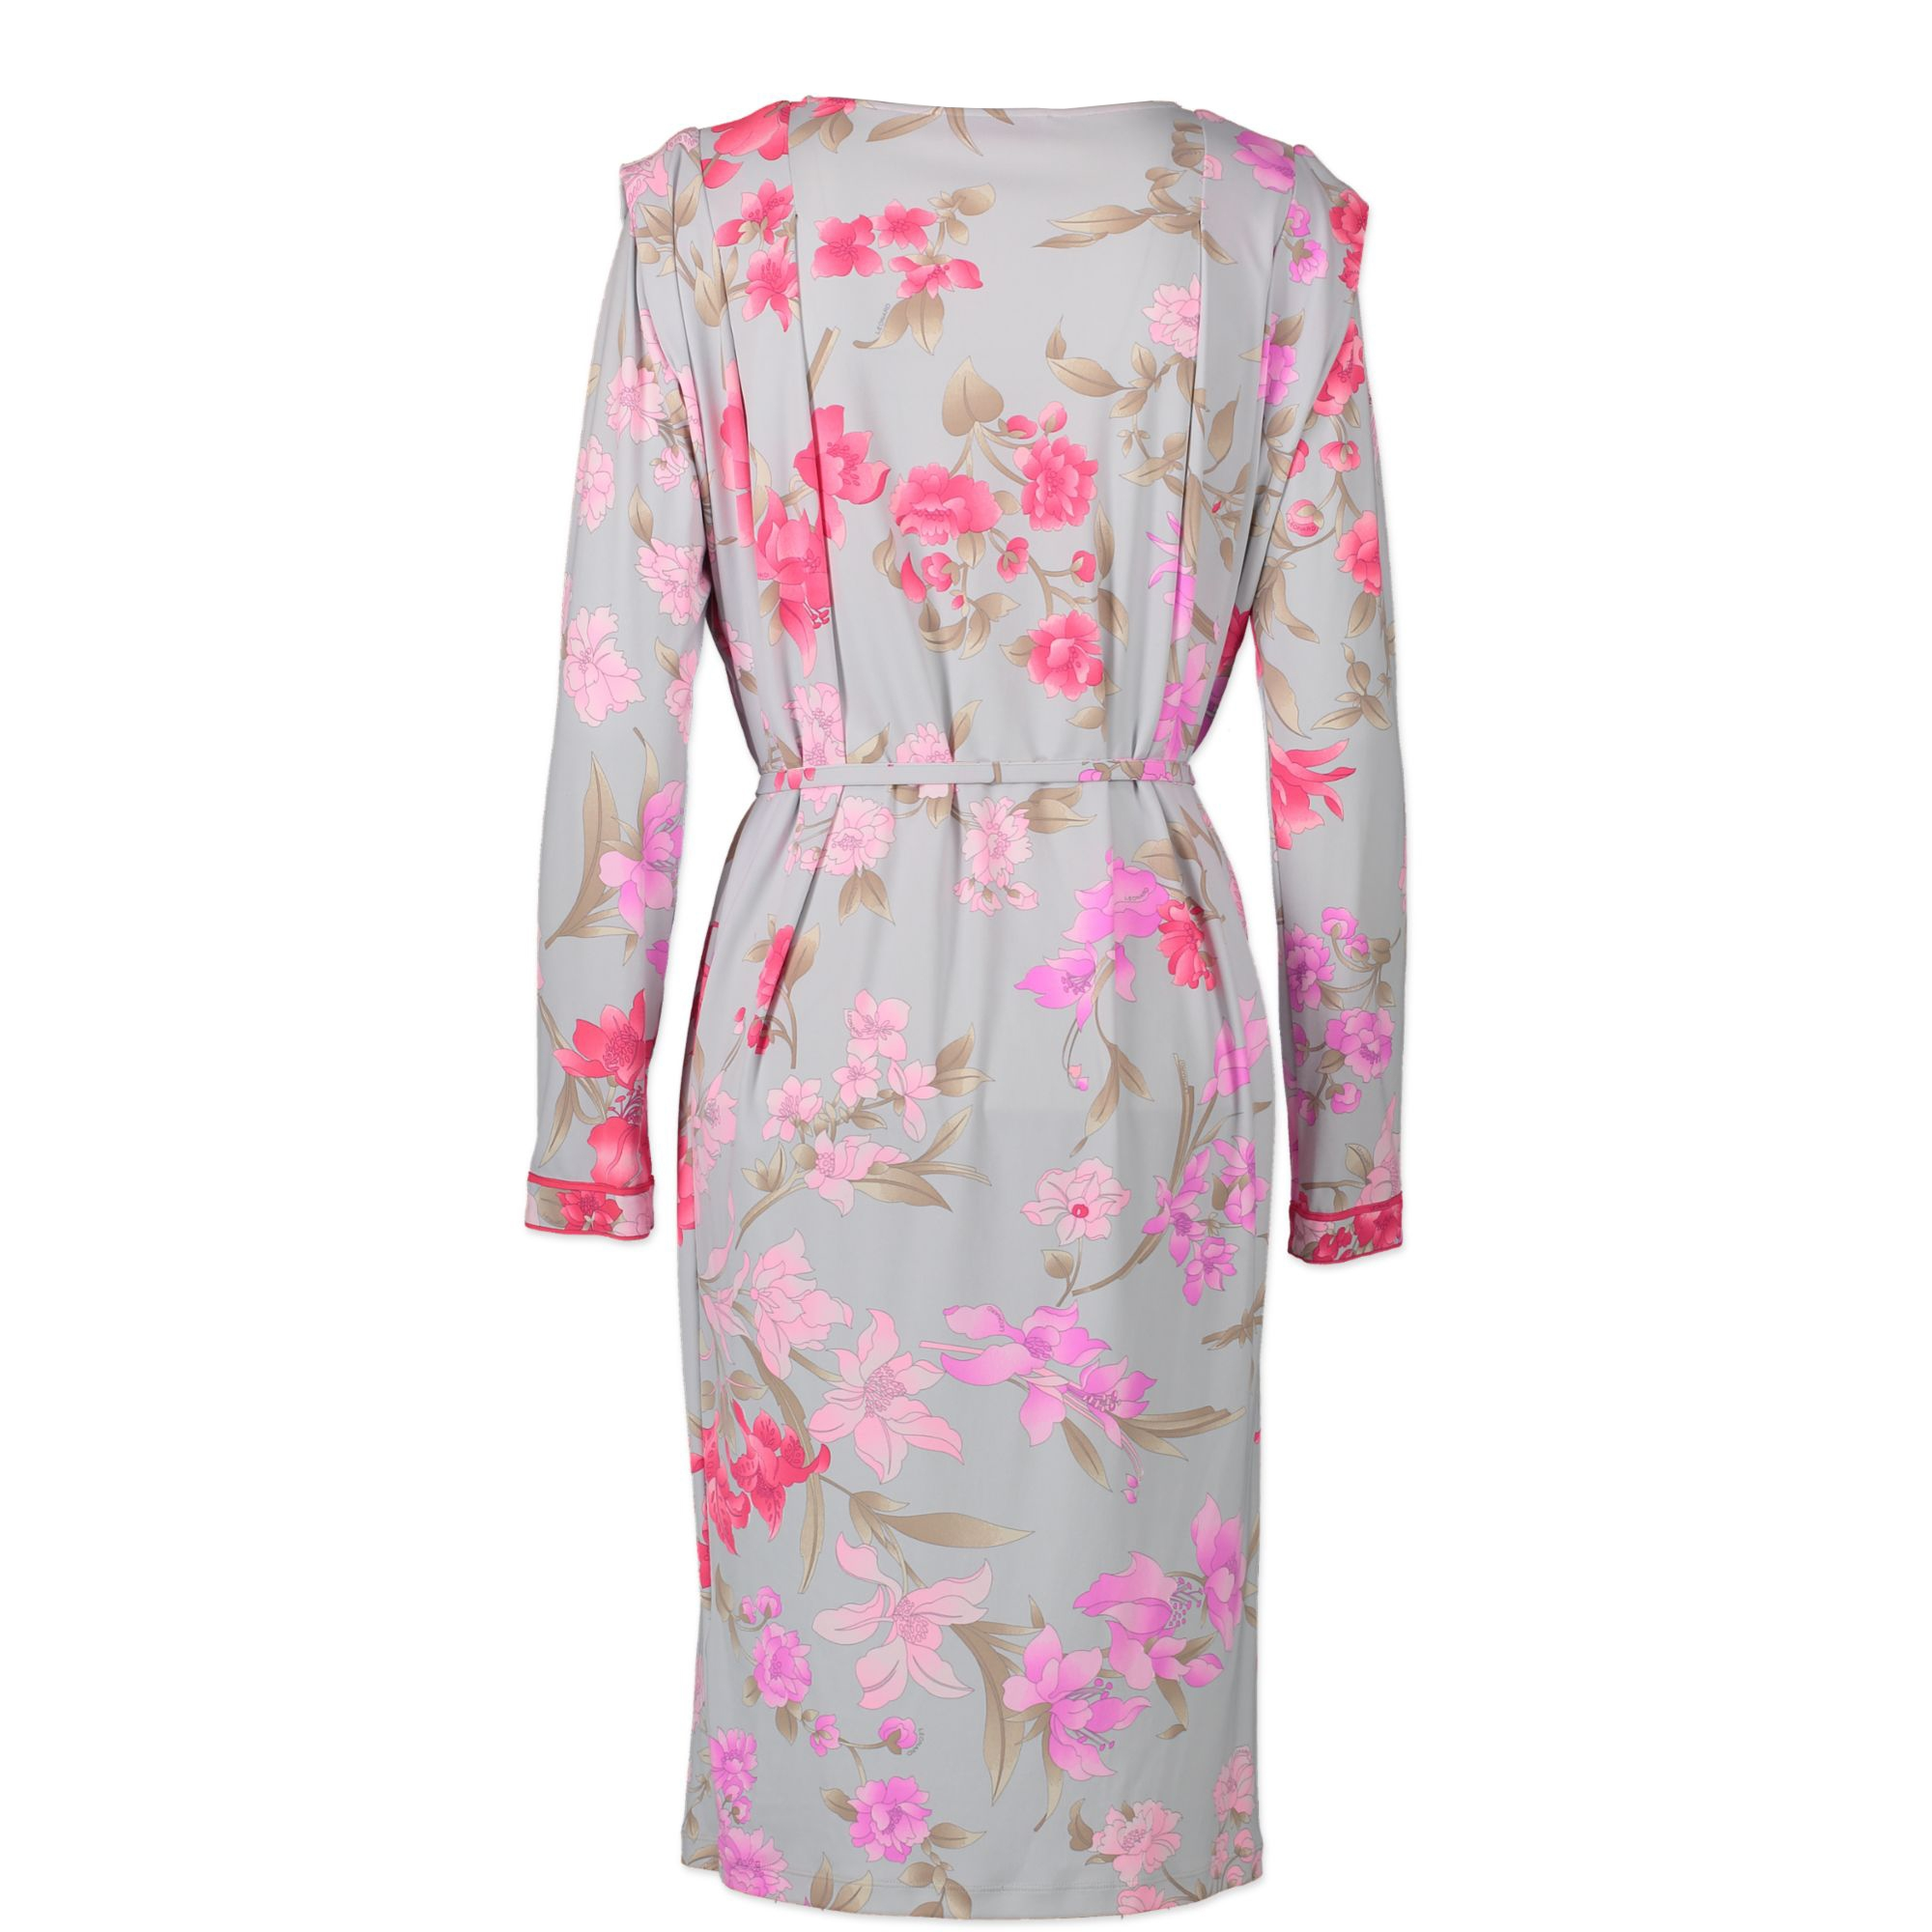 Leonard Fuchsia Floral Dress - Size 44 - for the best price at Labellov secondhand designer bags